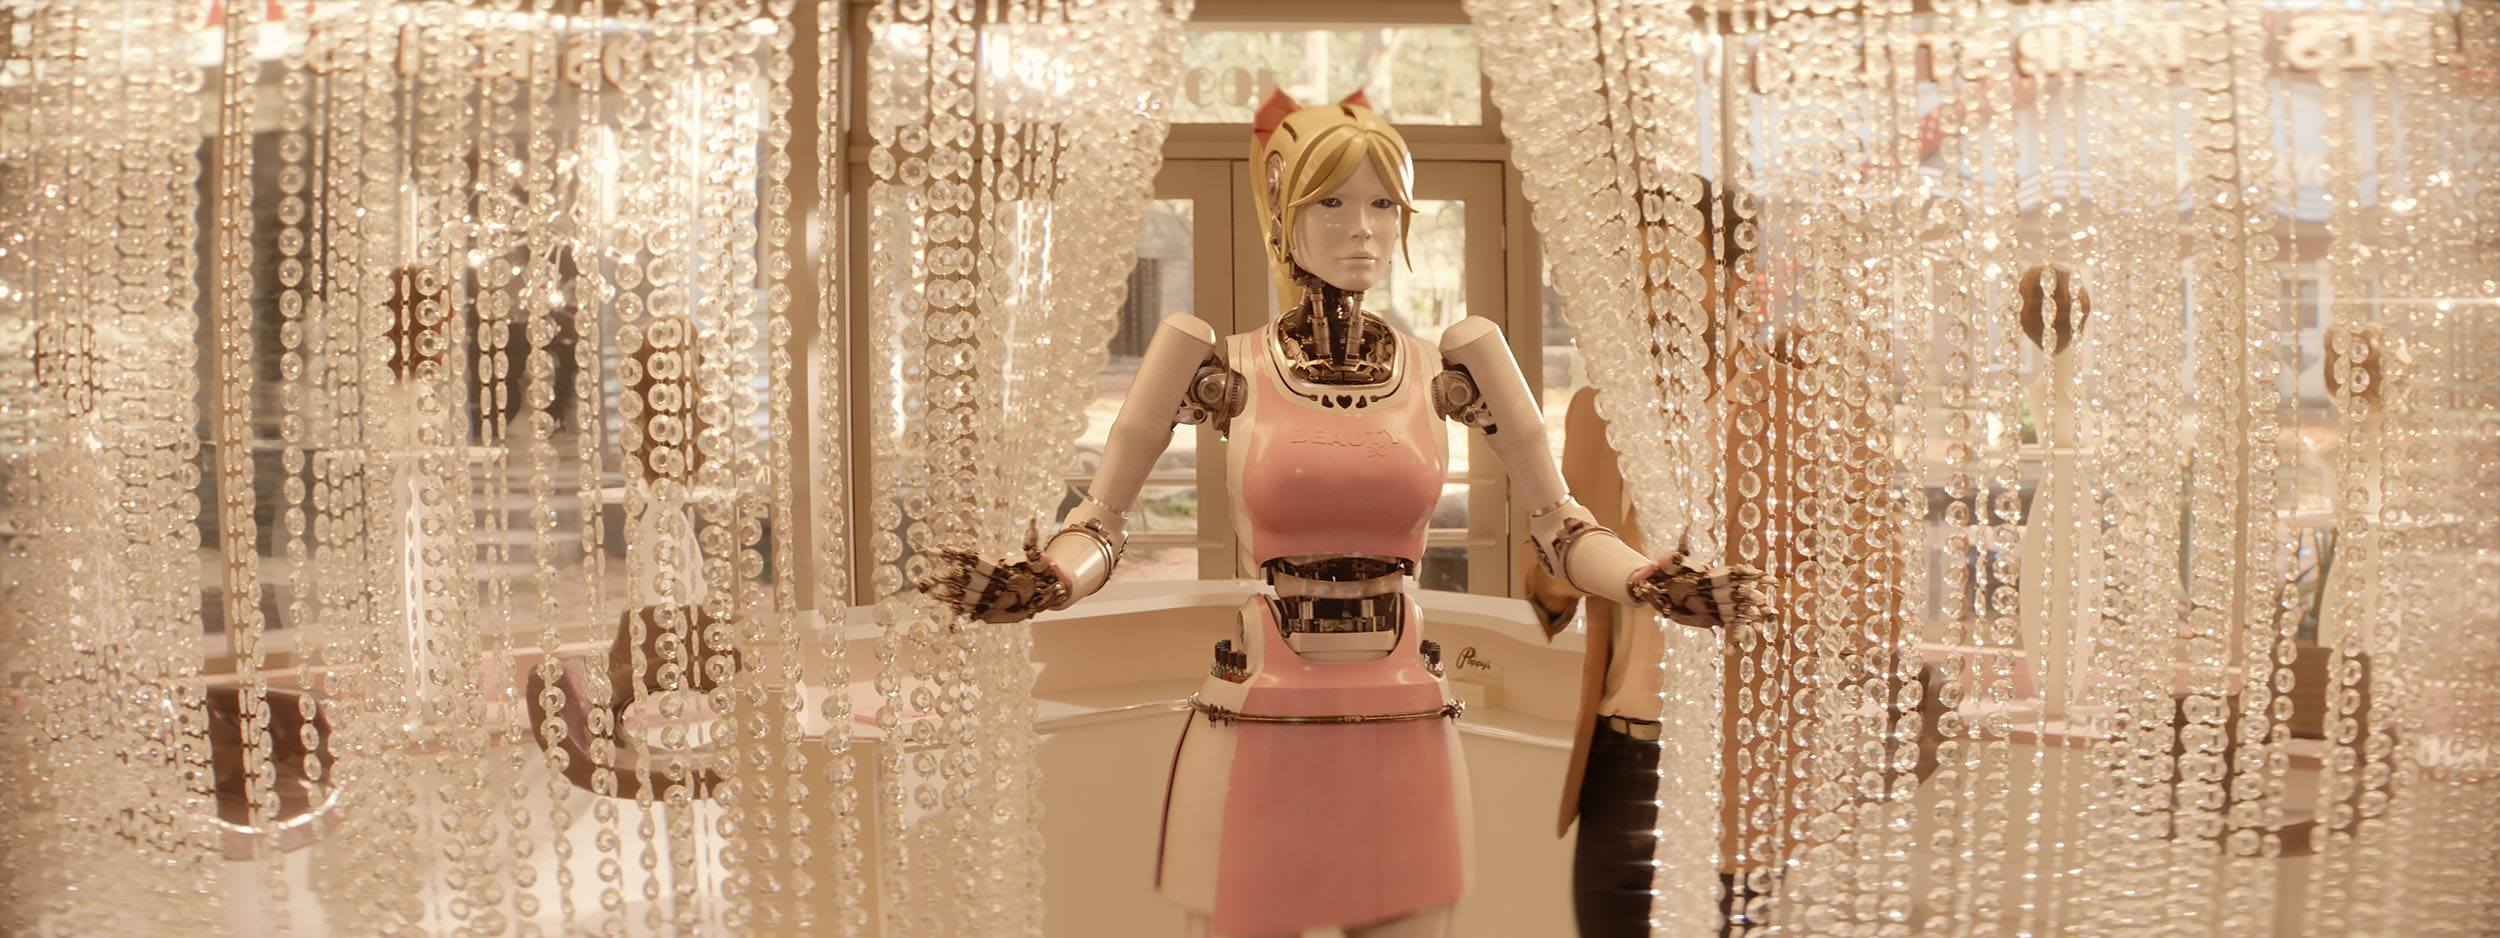 The Beauty Bot in Kingsman The Golden Circle (Sony Pictures Imageworks)